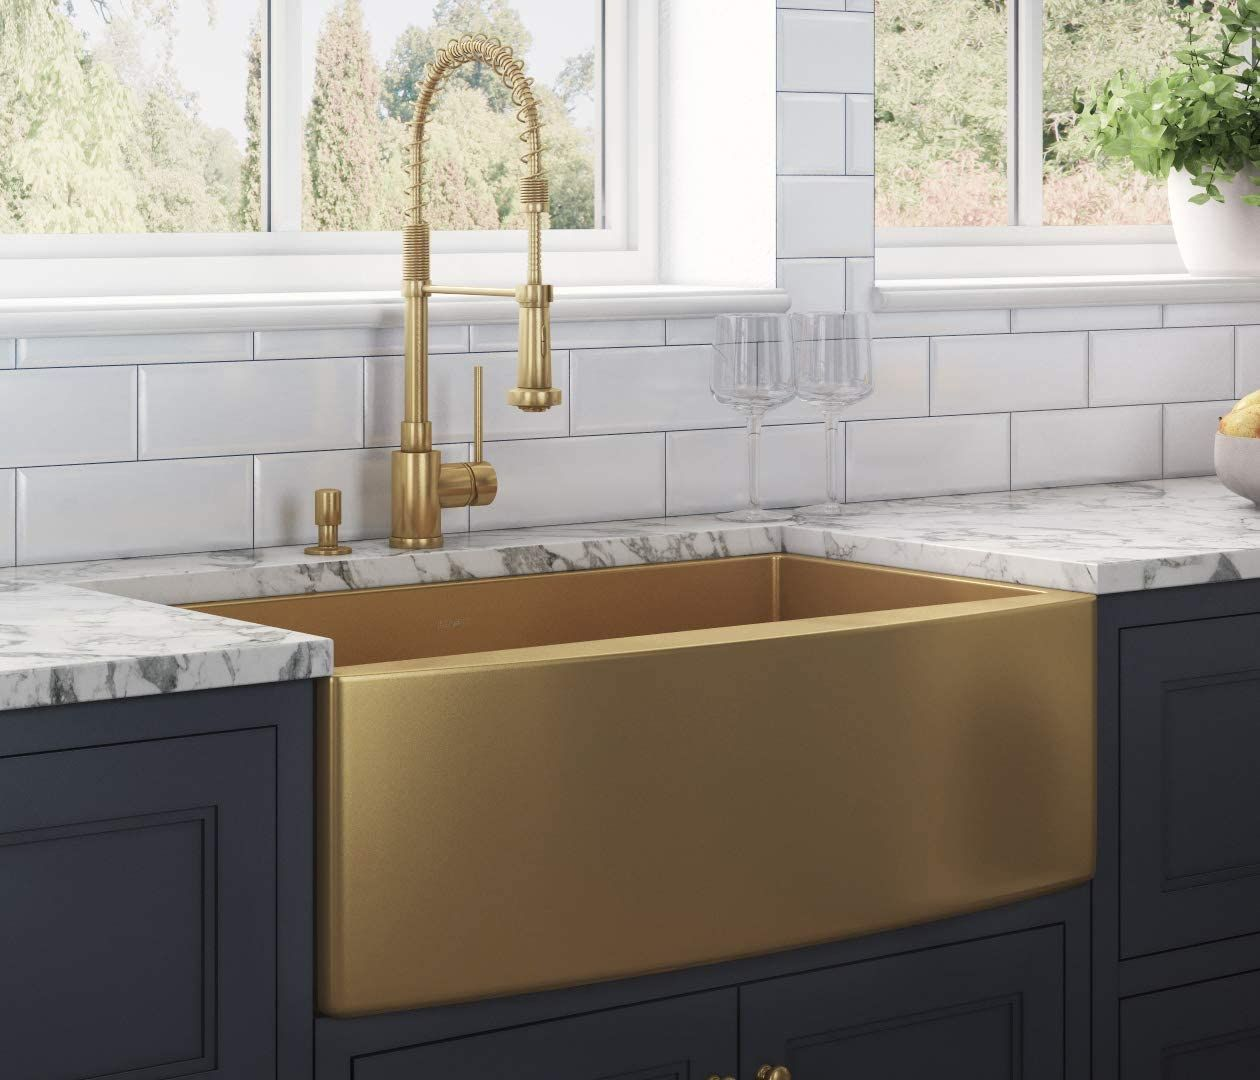 Price 459 00 Roll Over Image To Zoom In Video Ruvati Brass Tone 33 Inch Apron Front In 2020 Farmhouse Sink Kitchen Single Bowl Kitchen Sink Gold Kitchen